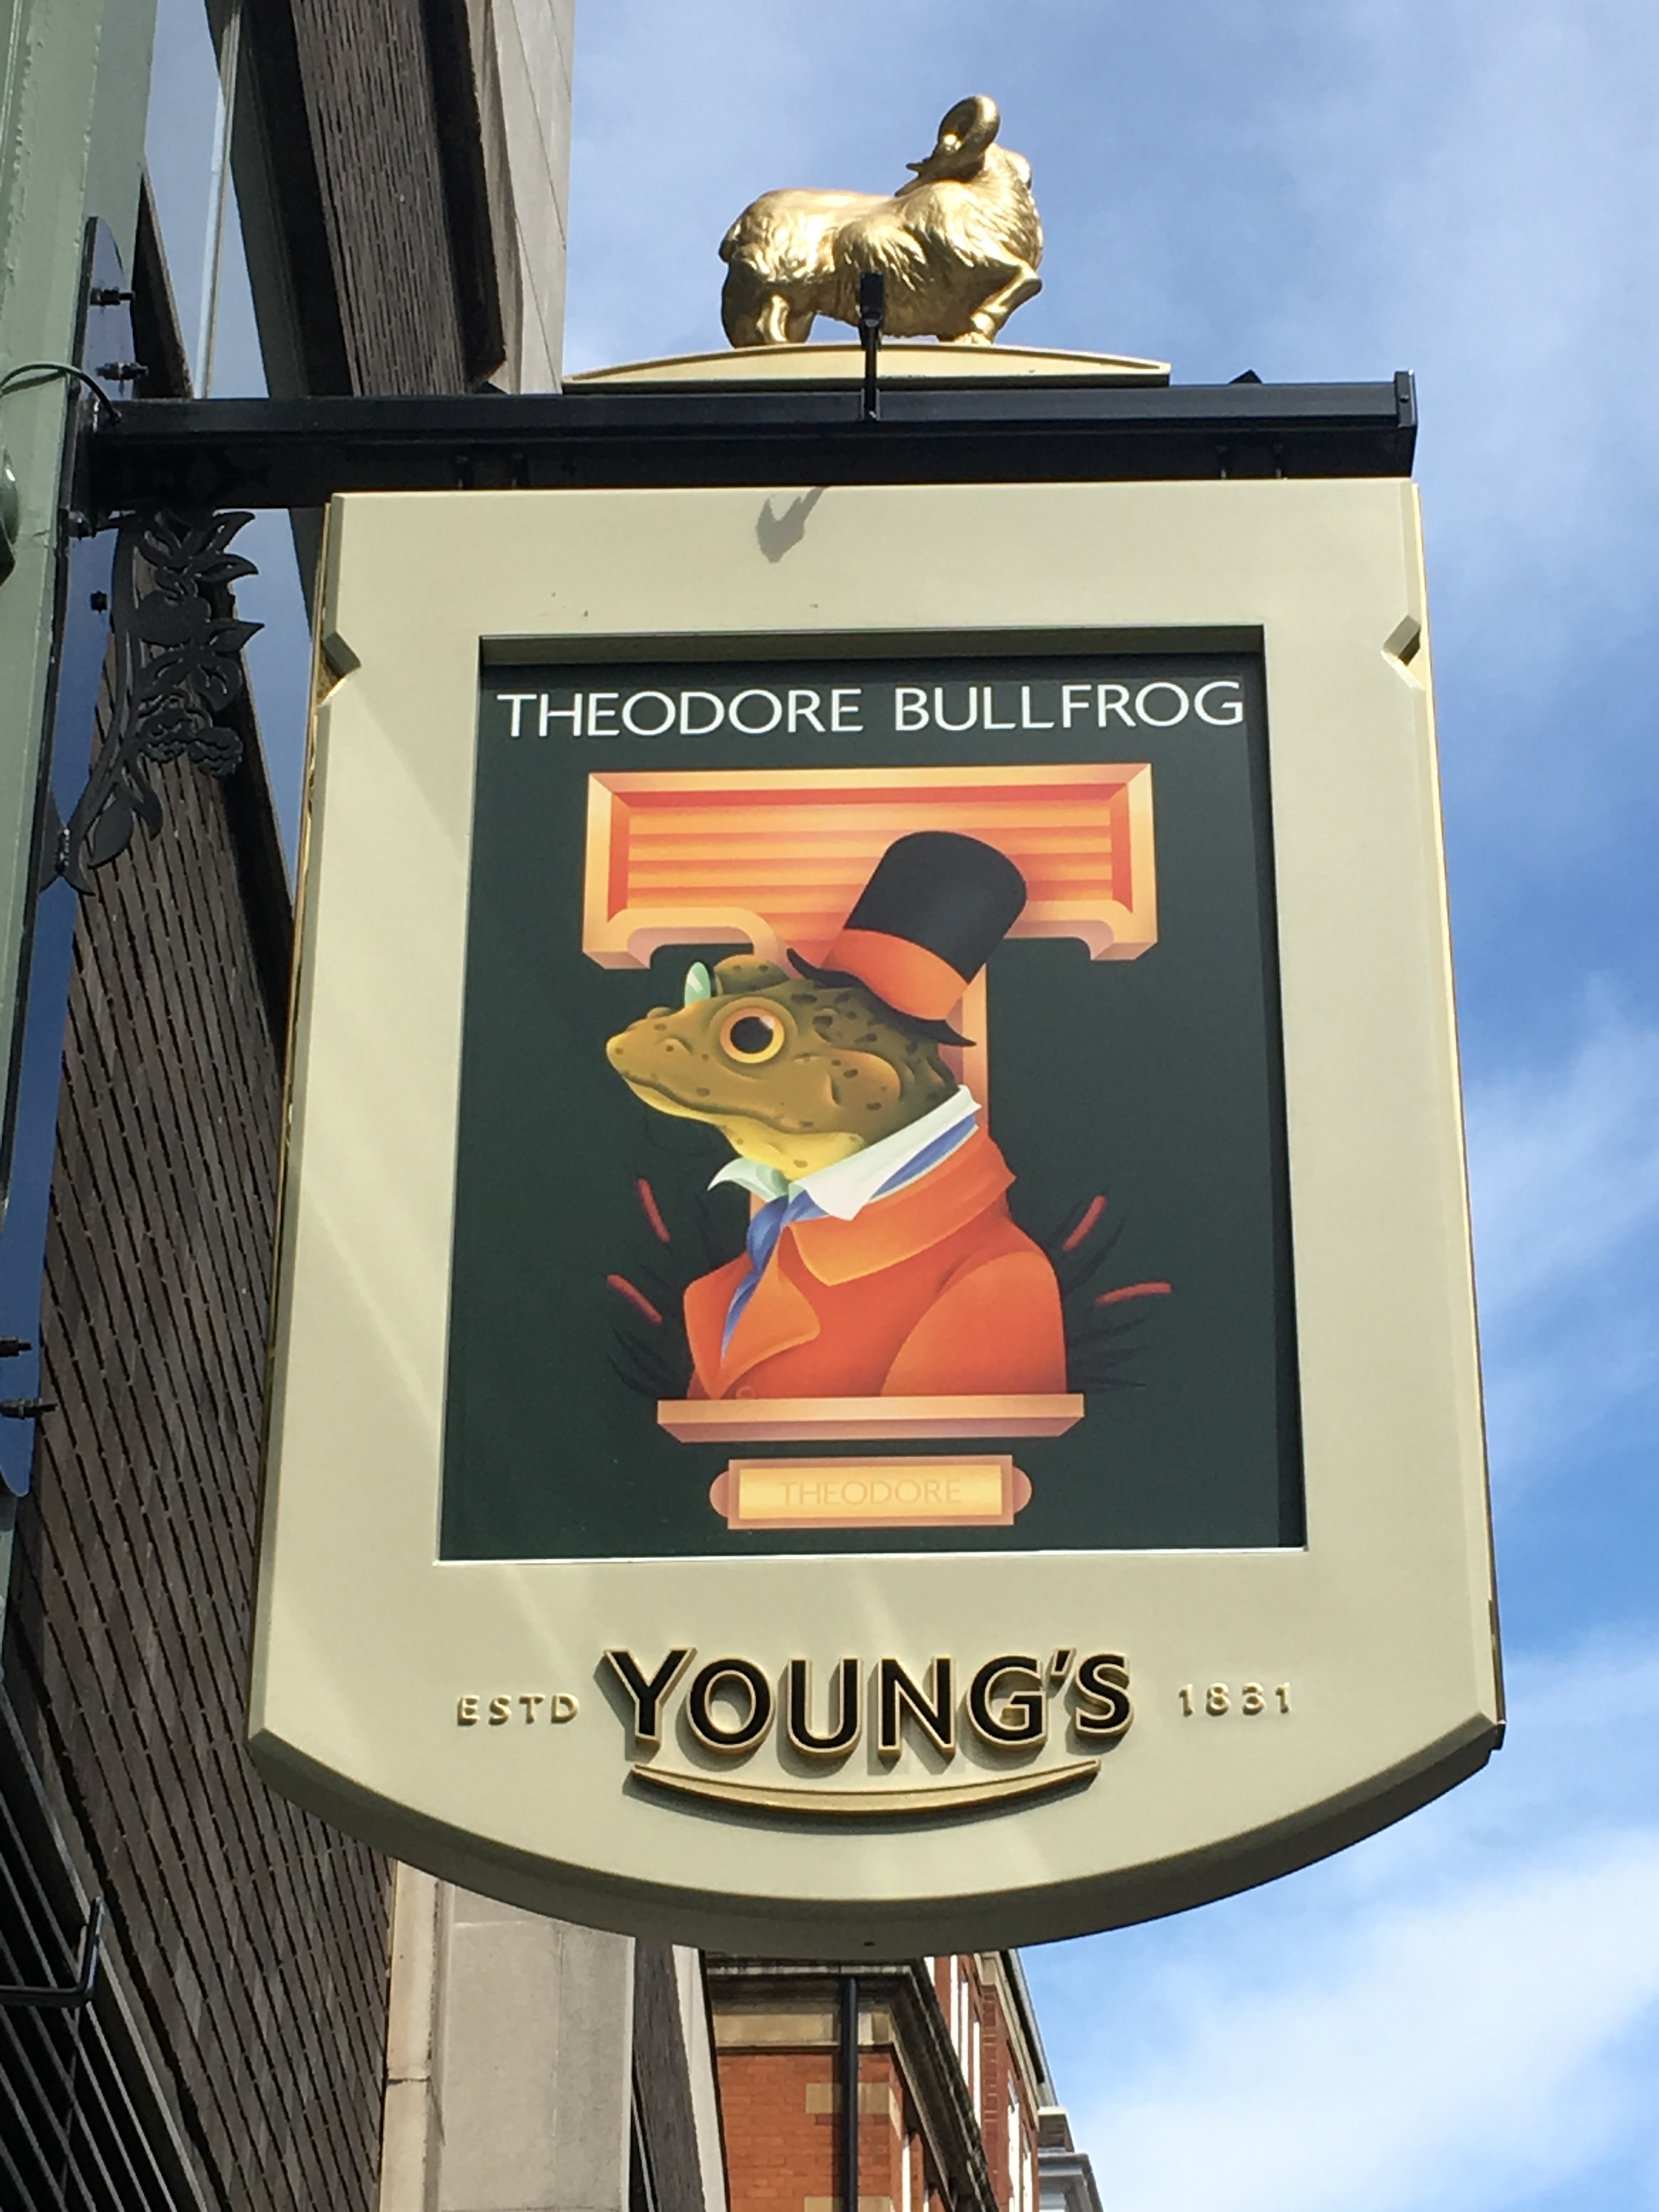 The Theodore Bullfrog